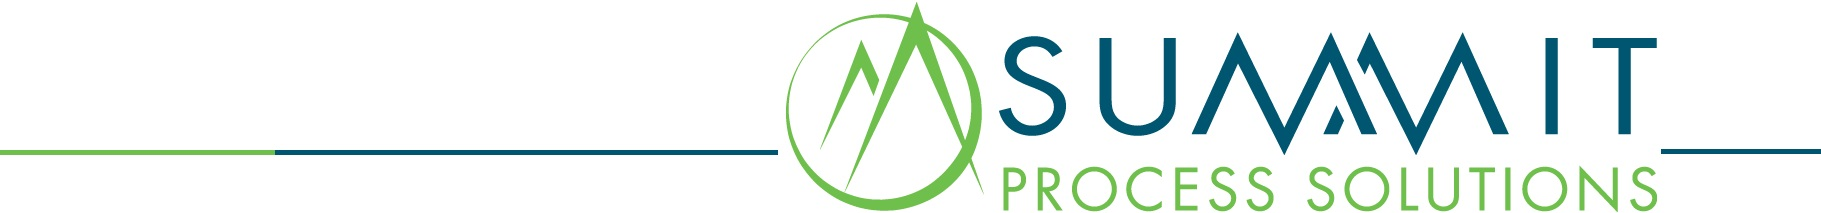 summit_logo_header